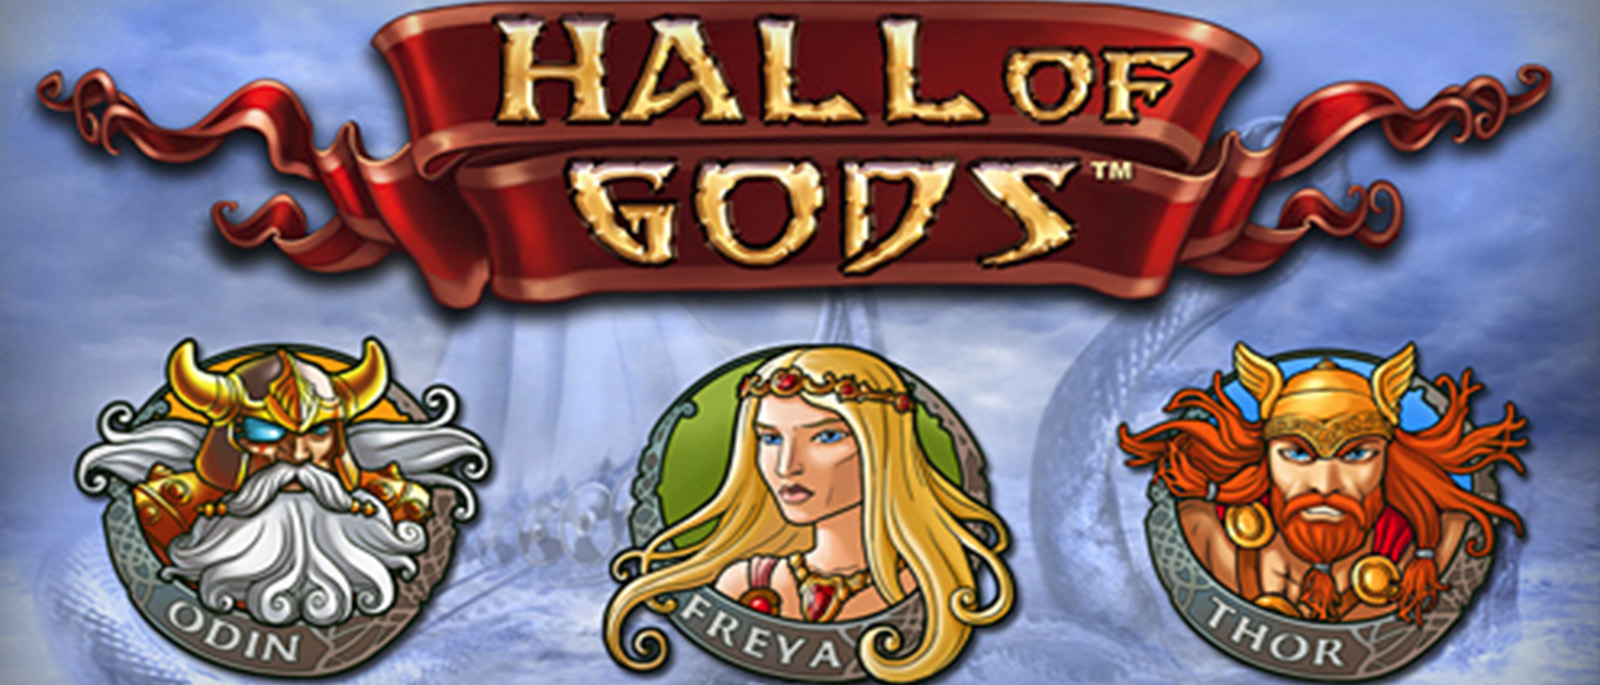 Hall of Gods Slot Spiele